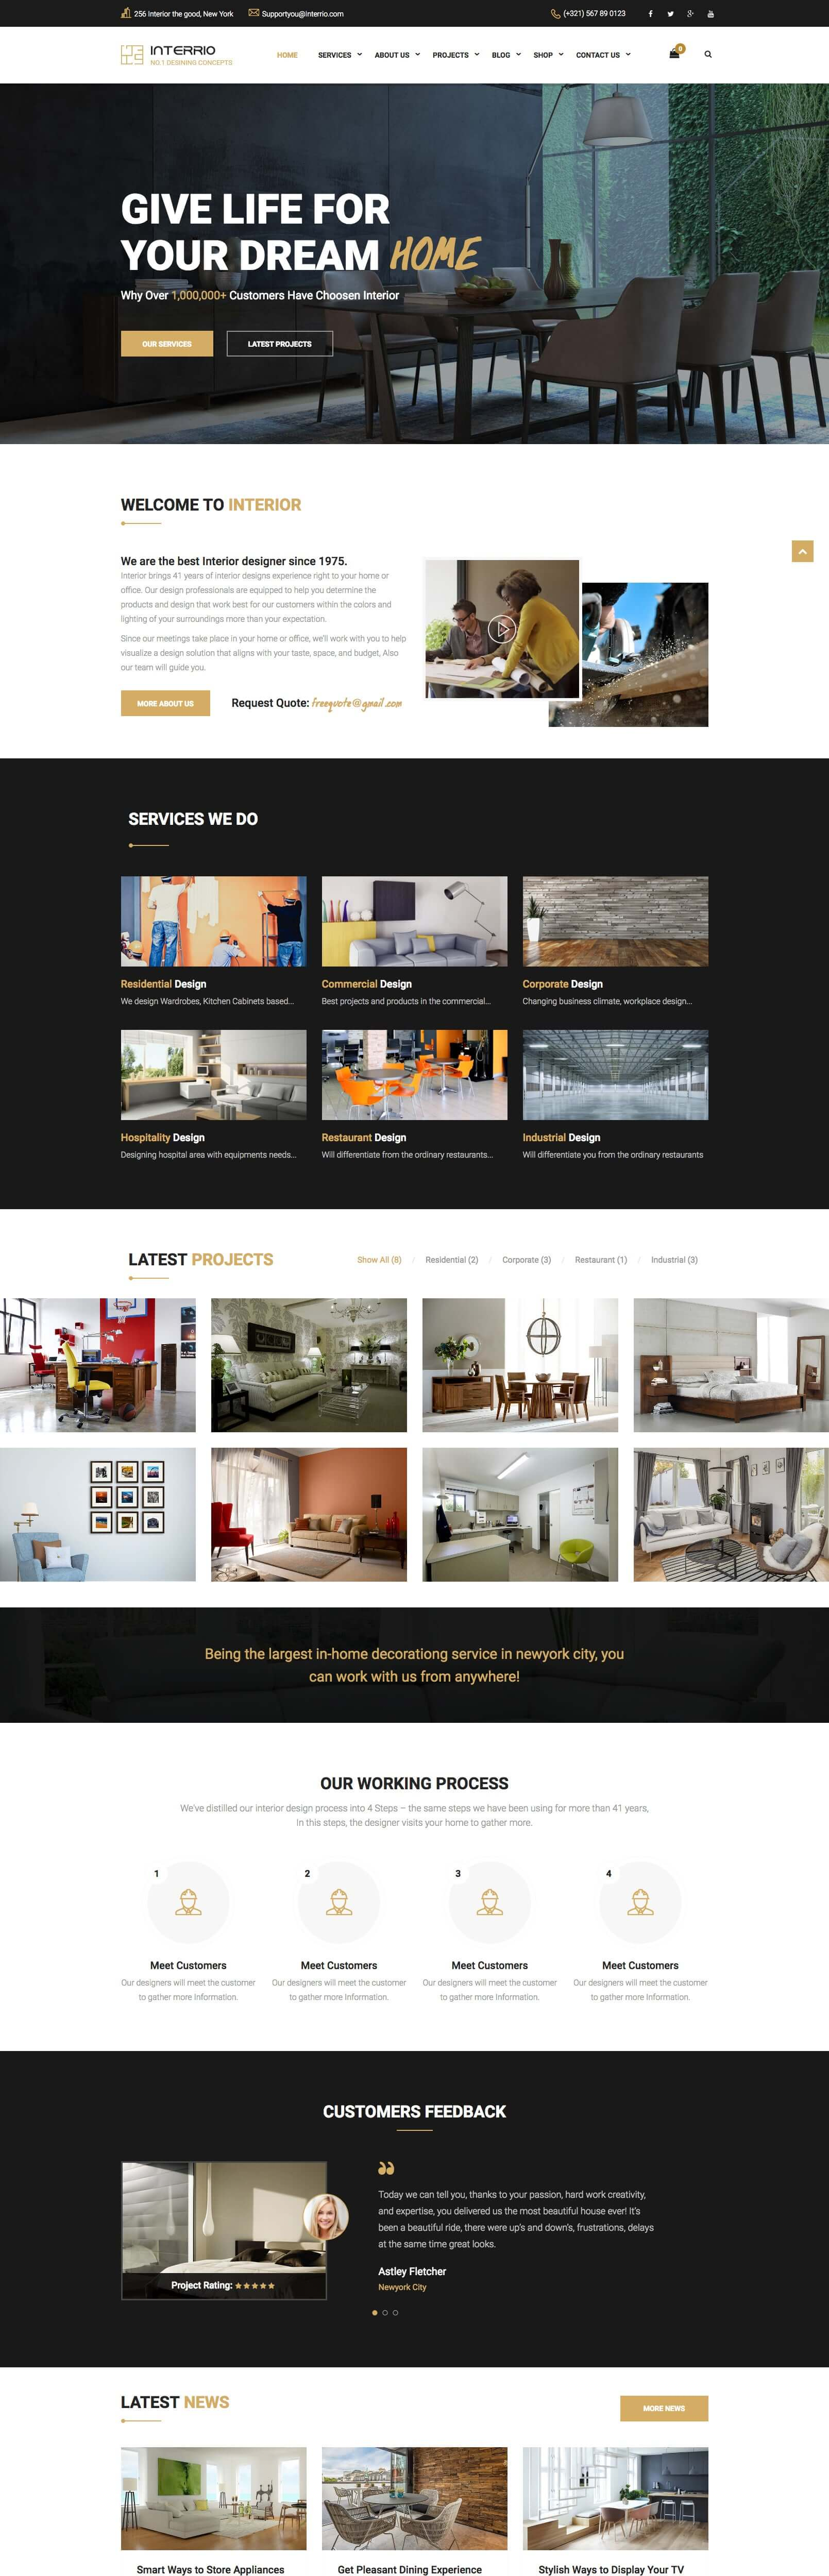 Interrio - Architecture & Interior Design Joomla Template